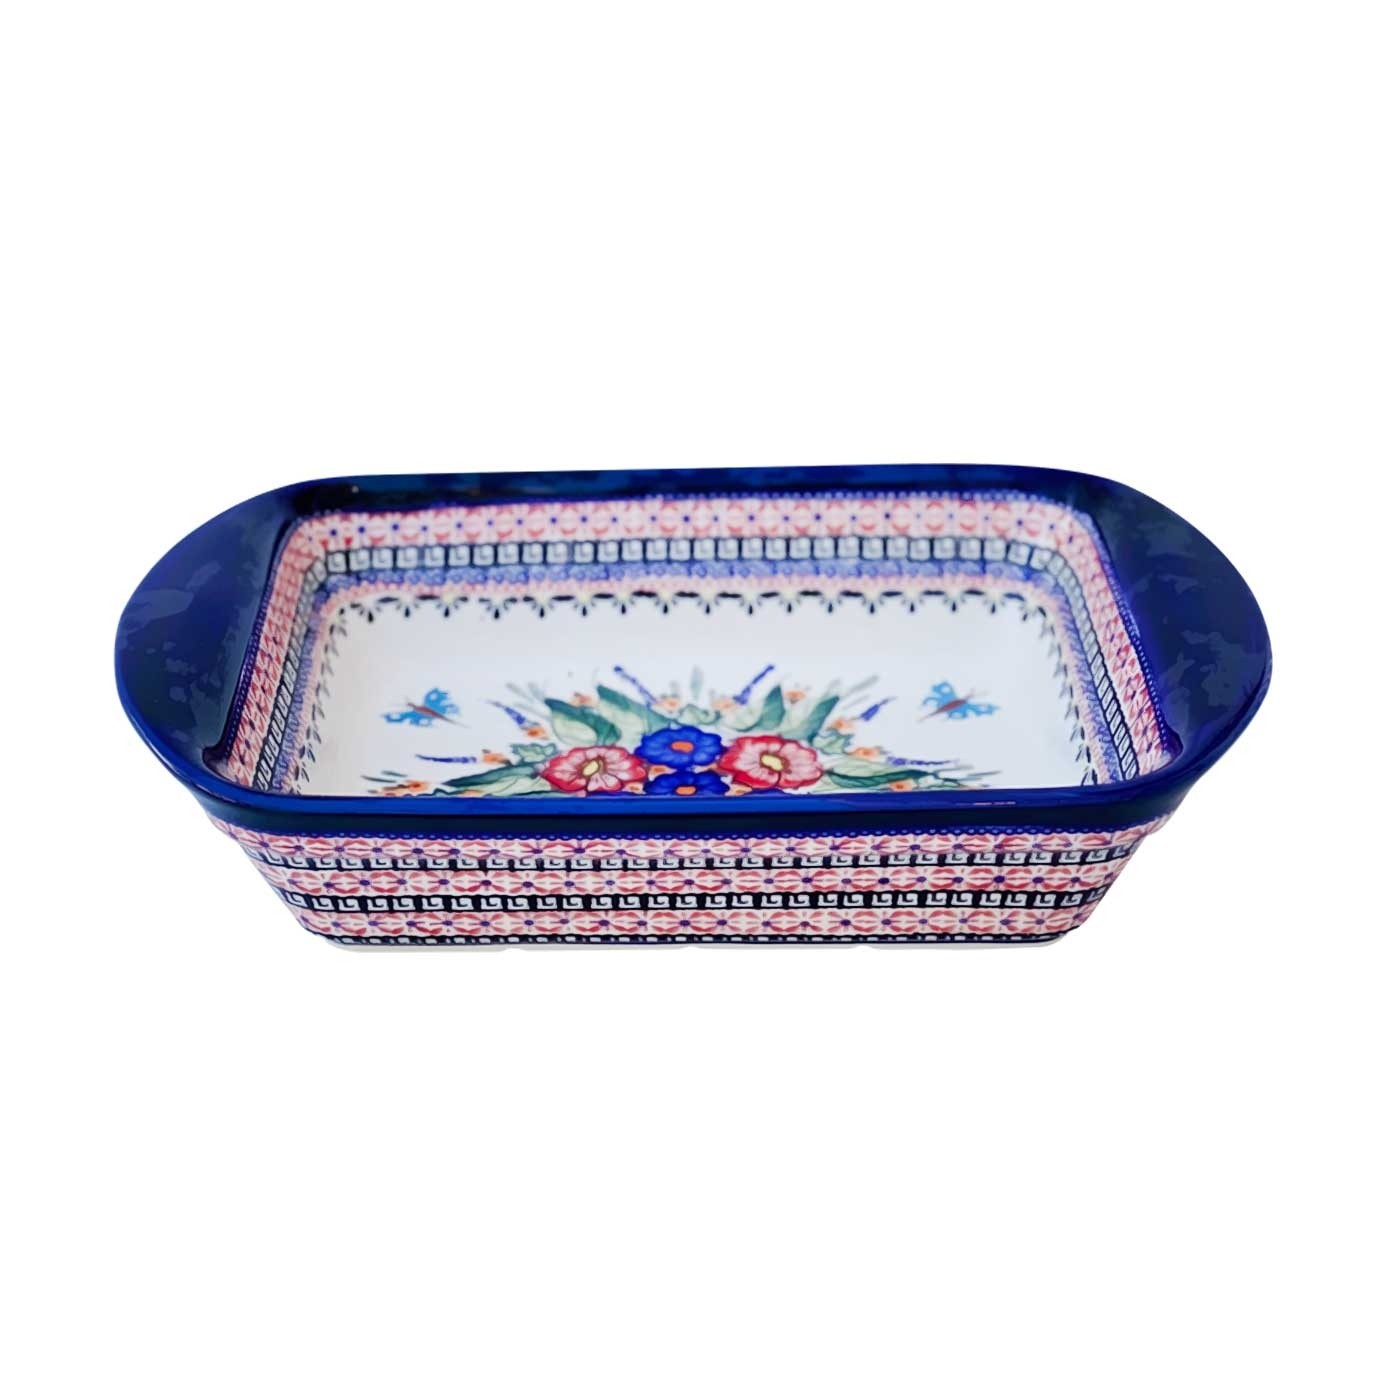 Pottery Avenue 14-inch Stoneware Handled Rectangular Serving-Baker - 1445-149AR Butterfly Merry Making